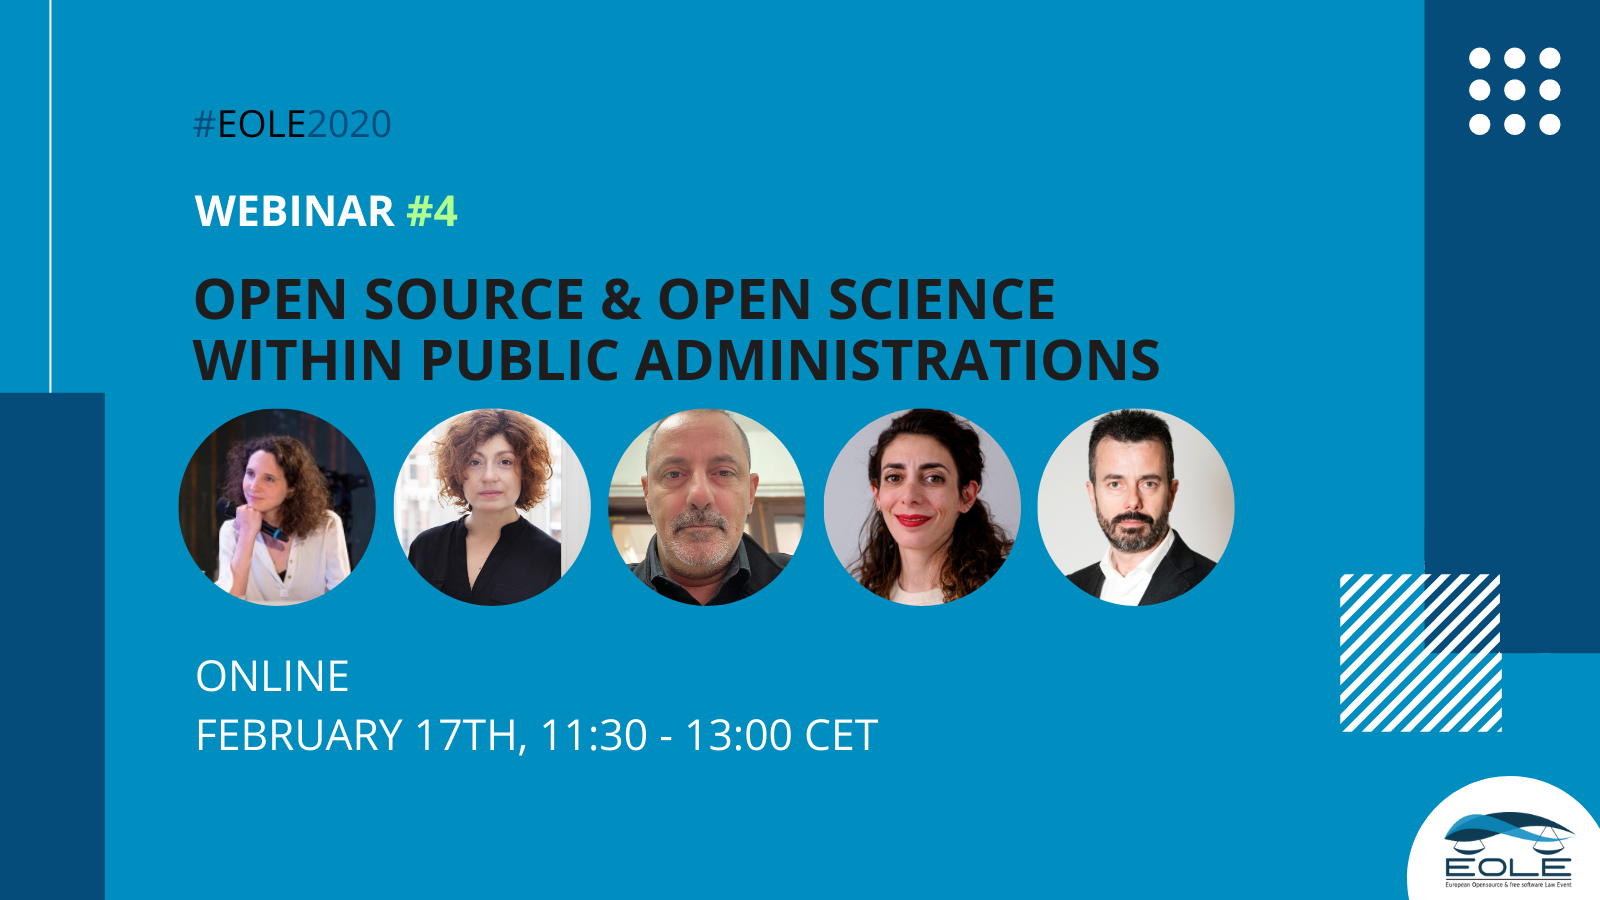 EOLE fourth webinar on open source and open science within public administrations